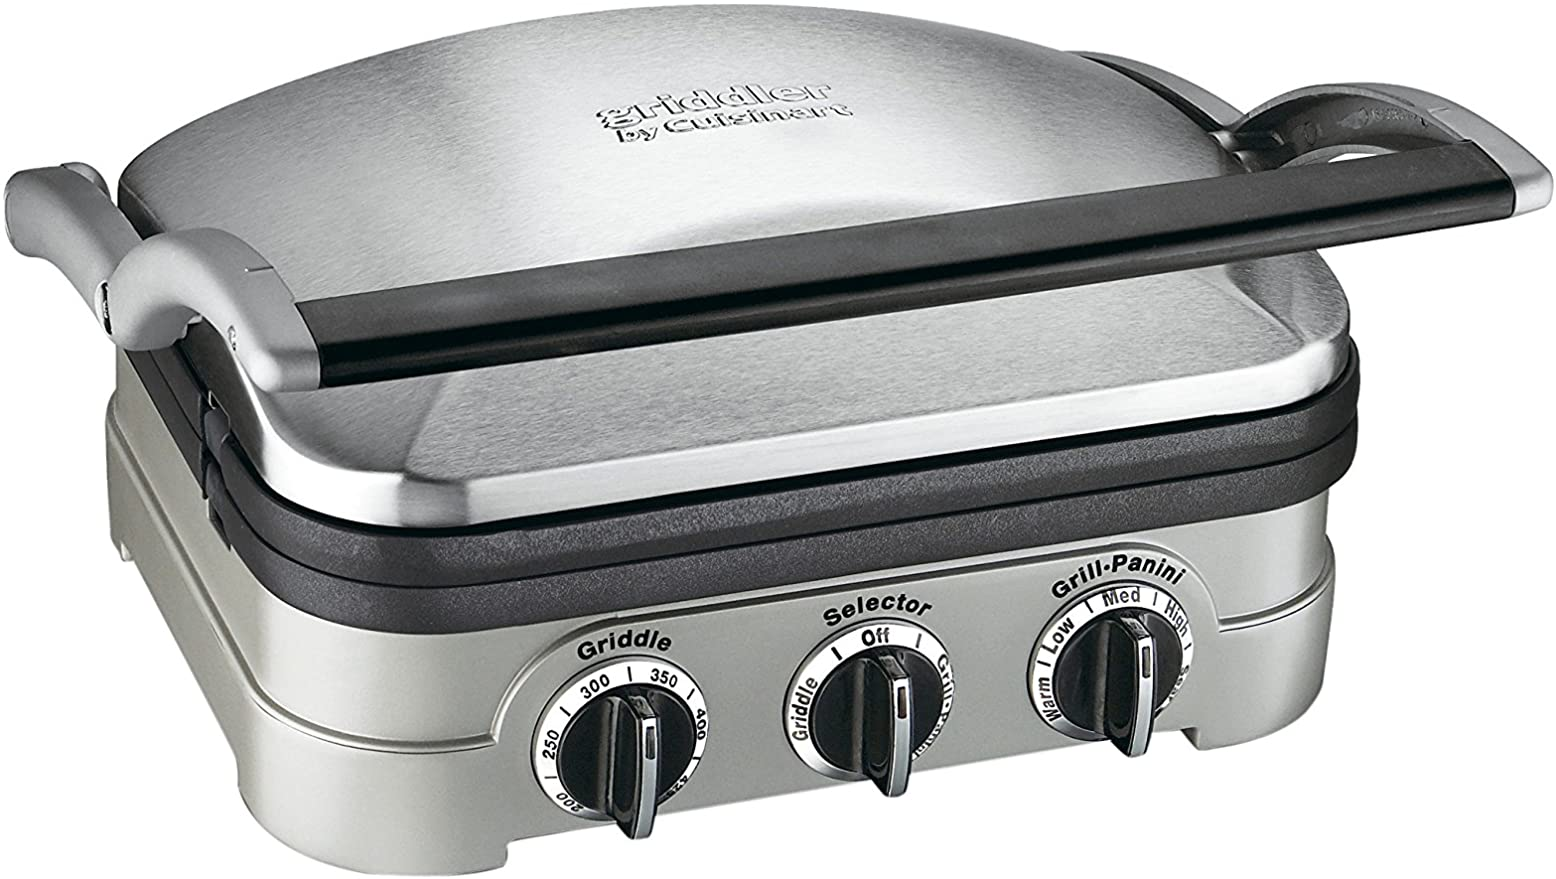 Silver panini press, closed, with three dials on the front